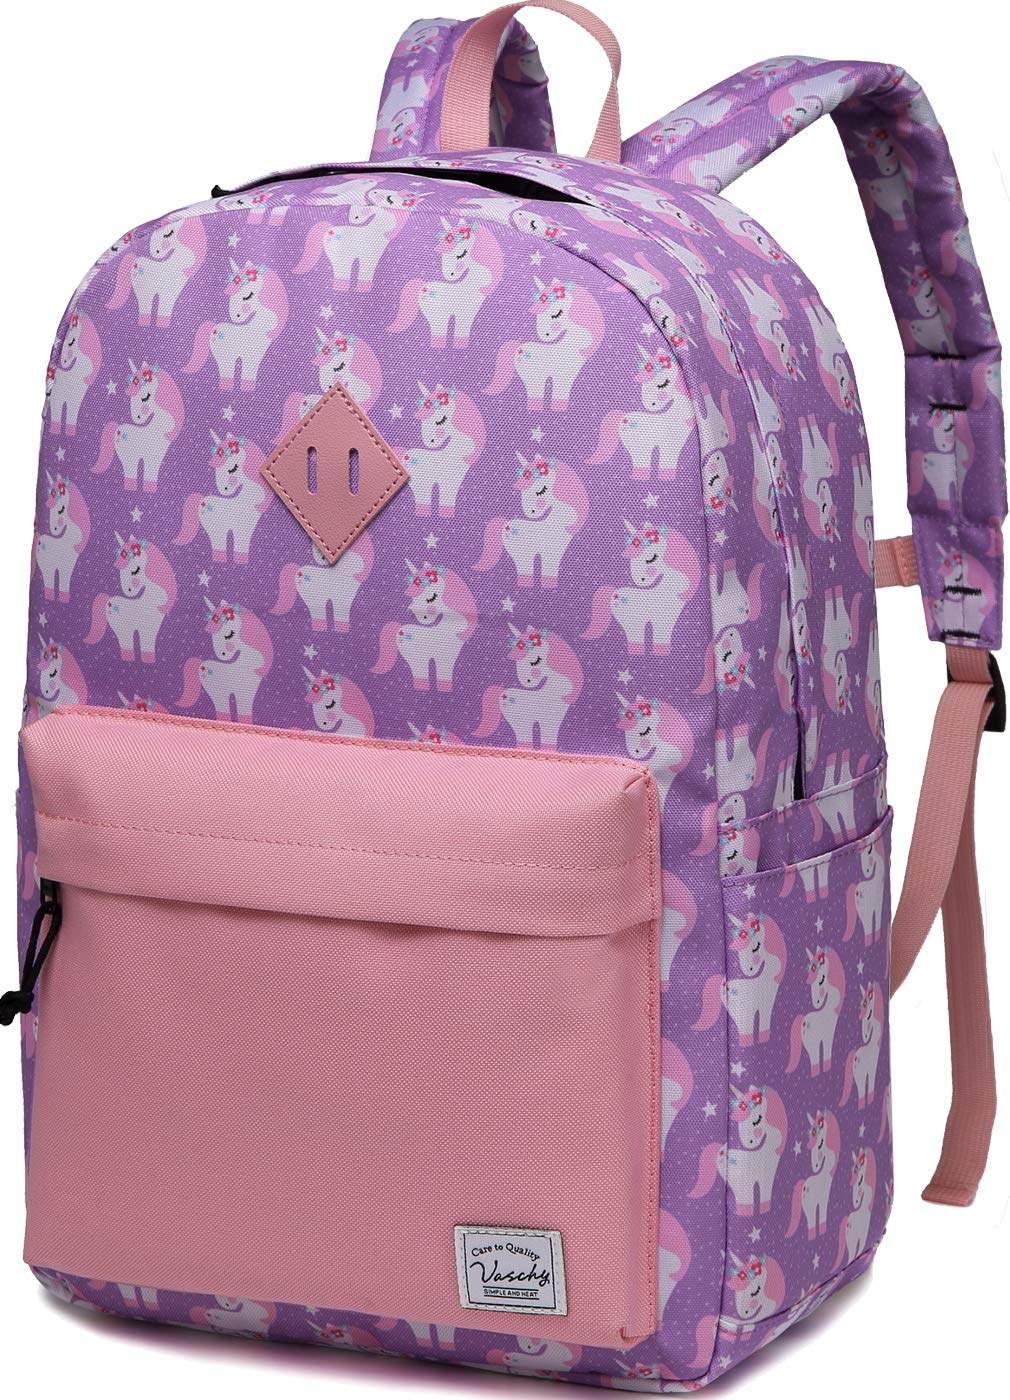 Backpack for Little Girls,Vaschy Preschool Backpacks for kindergarten with Chest Strap Large Pink Unicorn by VASCHY